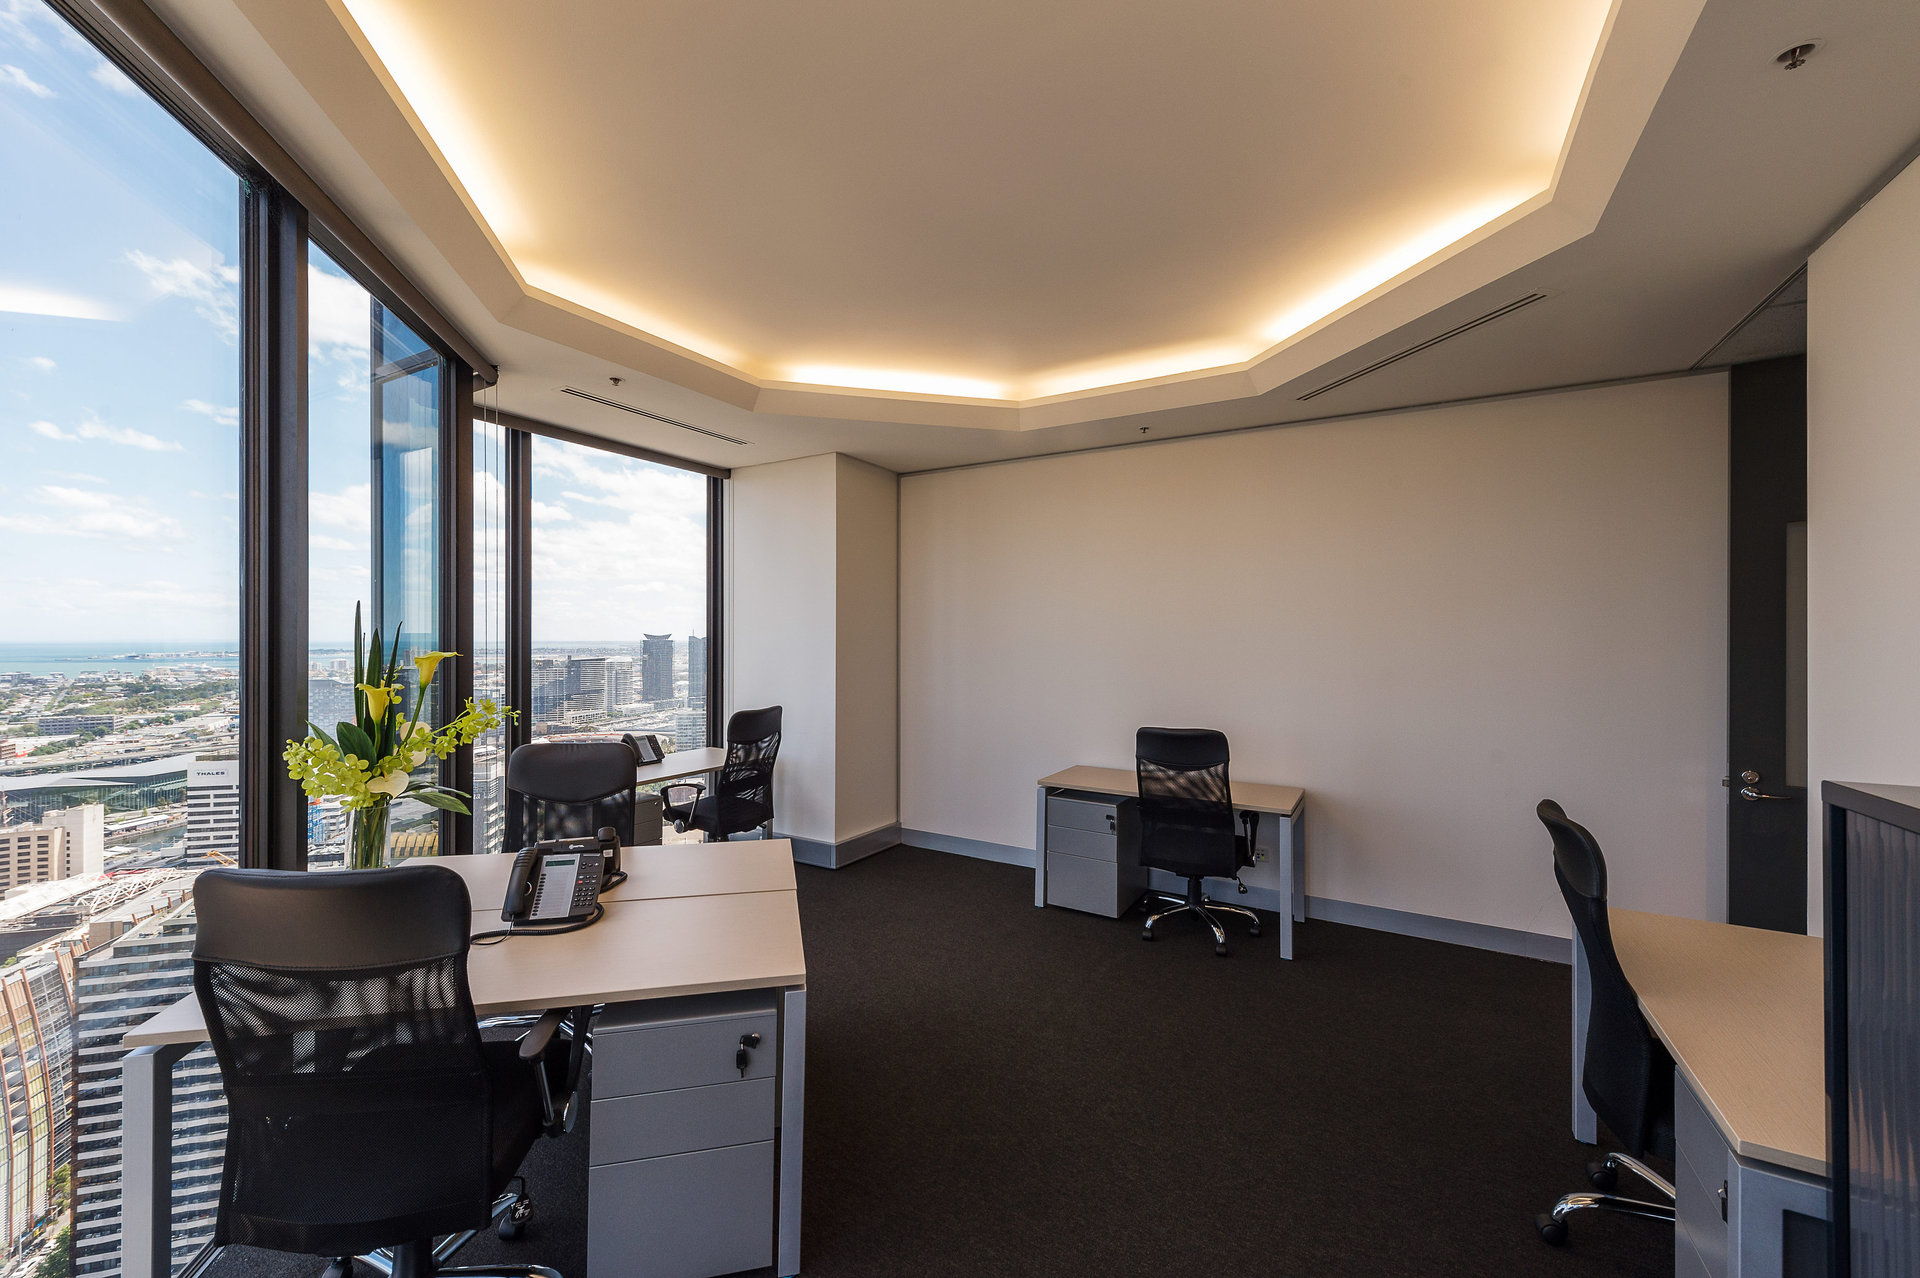 35 Square Metre Office Space available at Rialto Tower, 525 Collins St – Prestigious Location – All Inclusive Cost